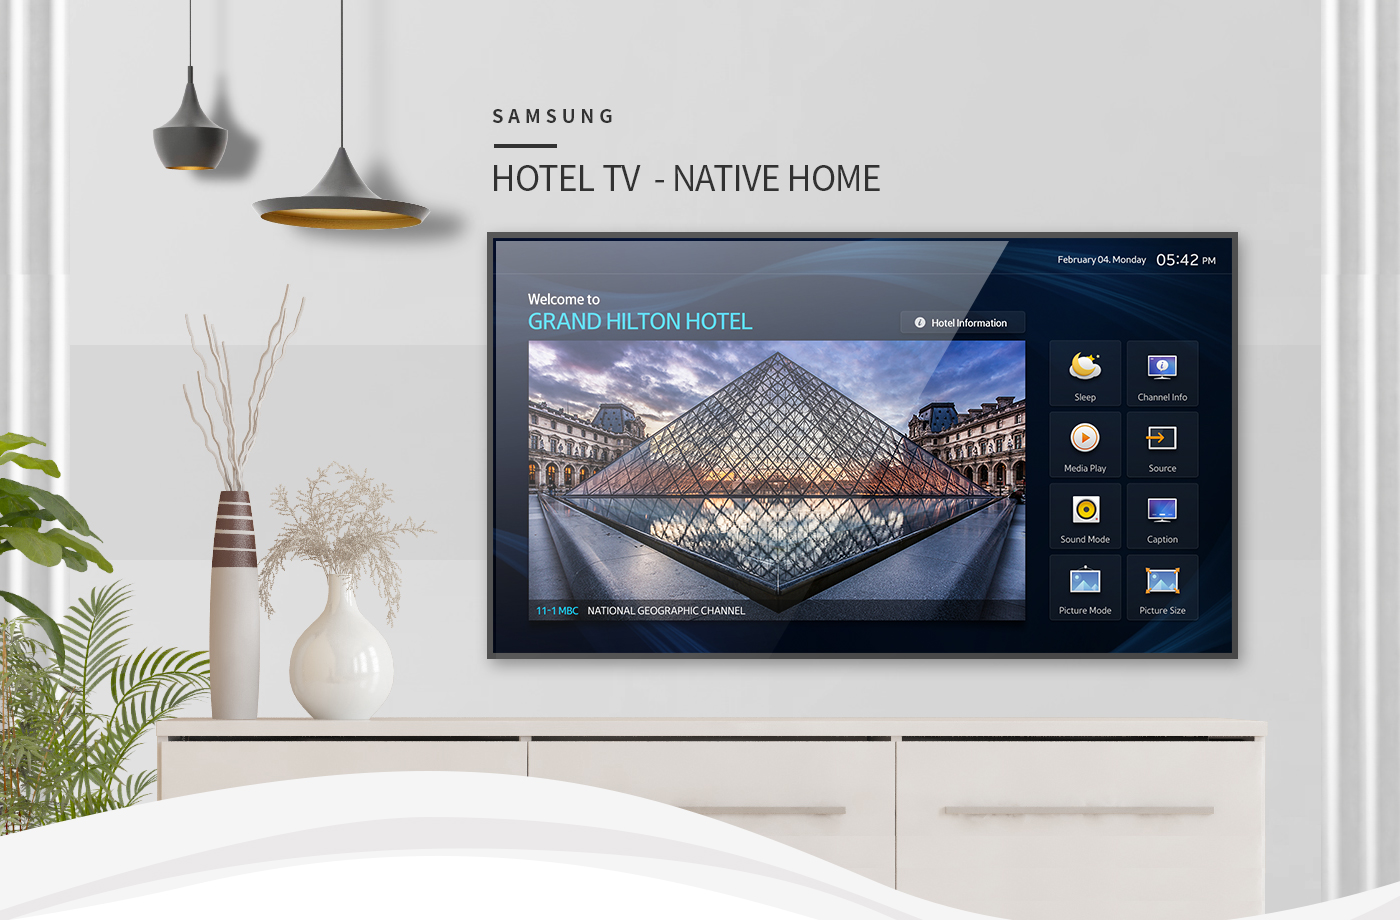 hoteltv_native_01